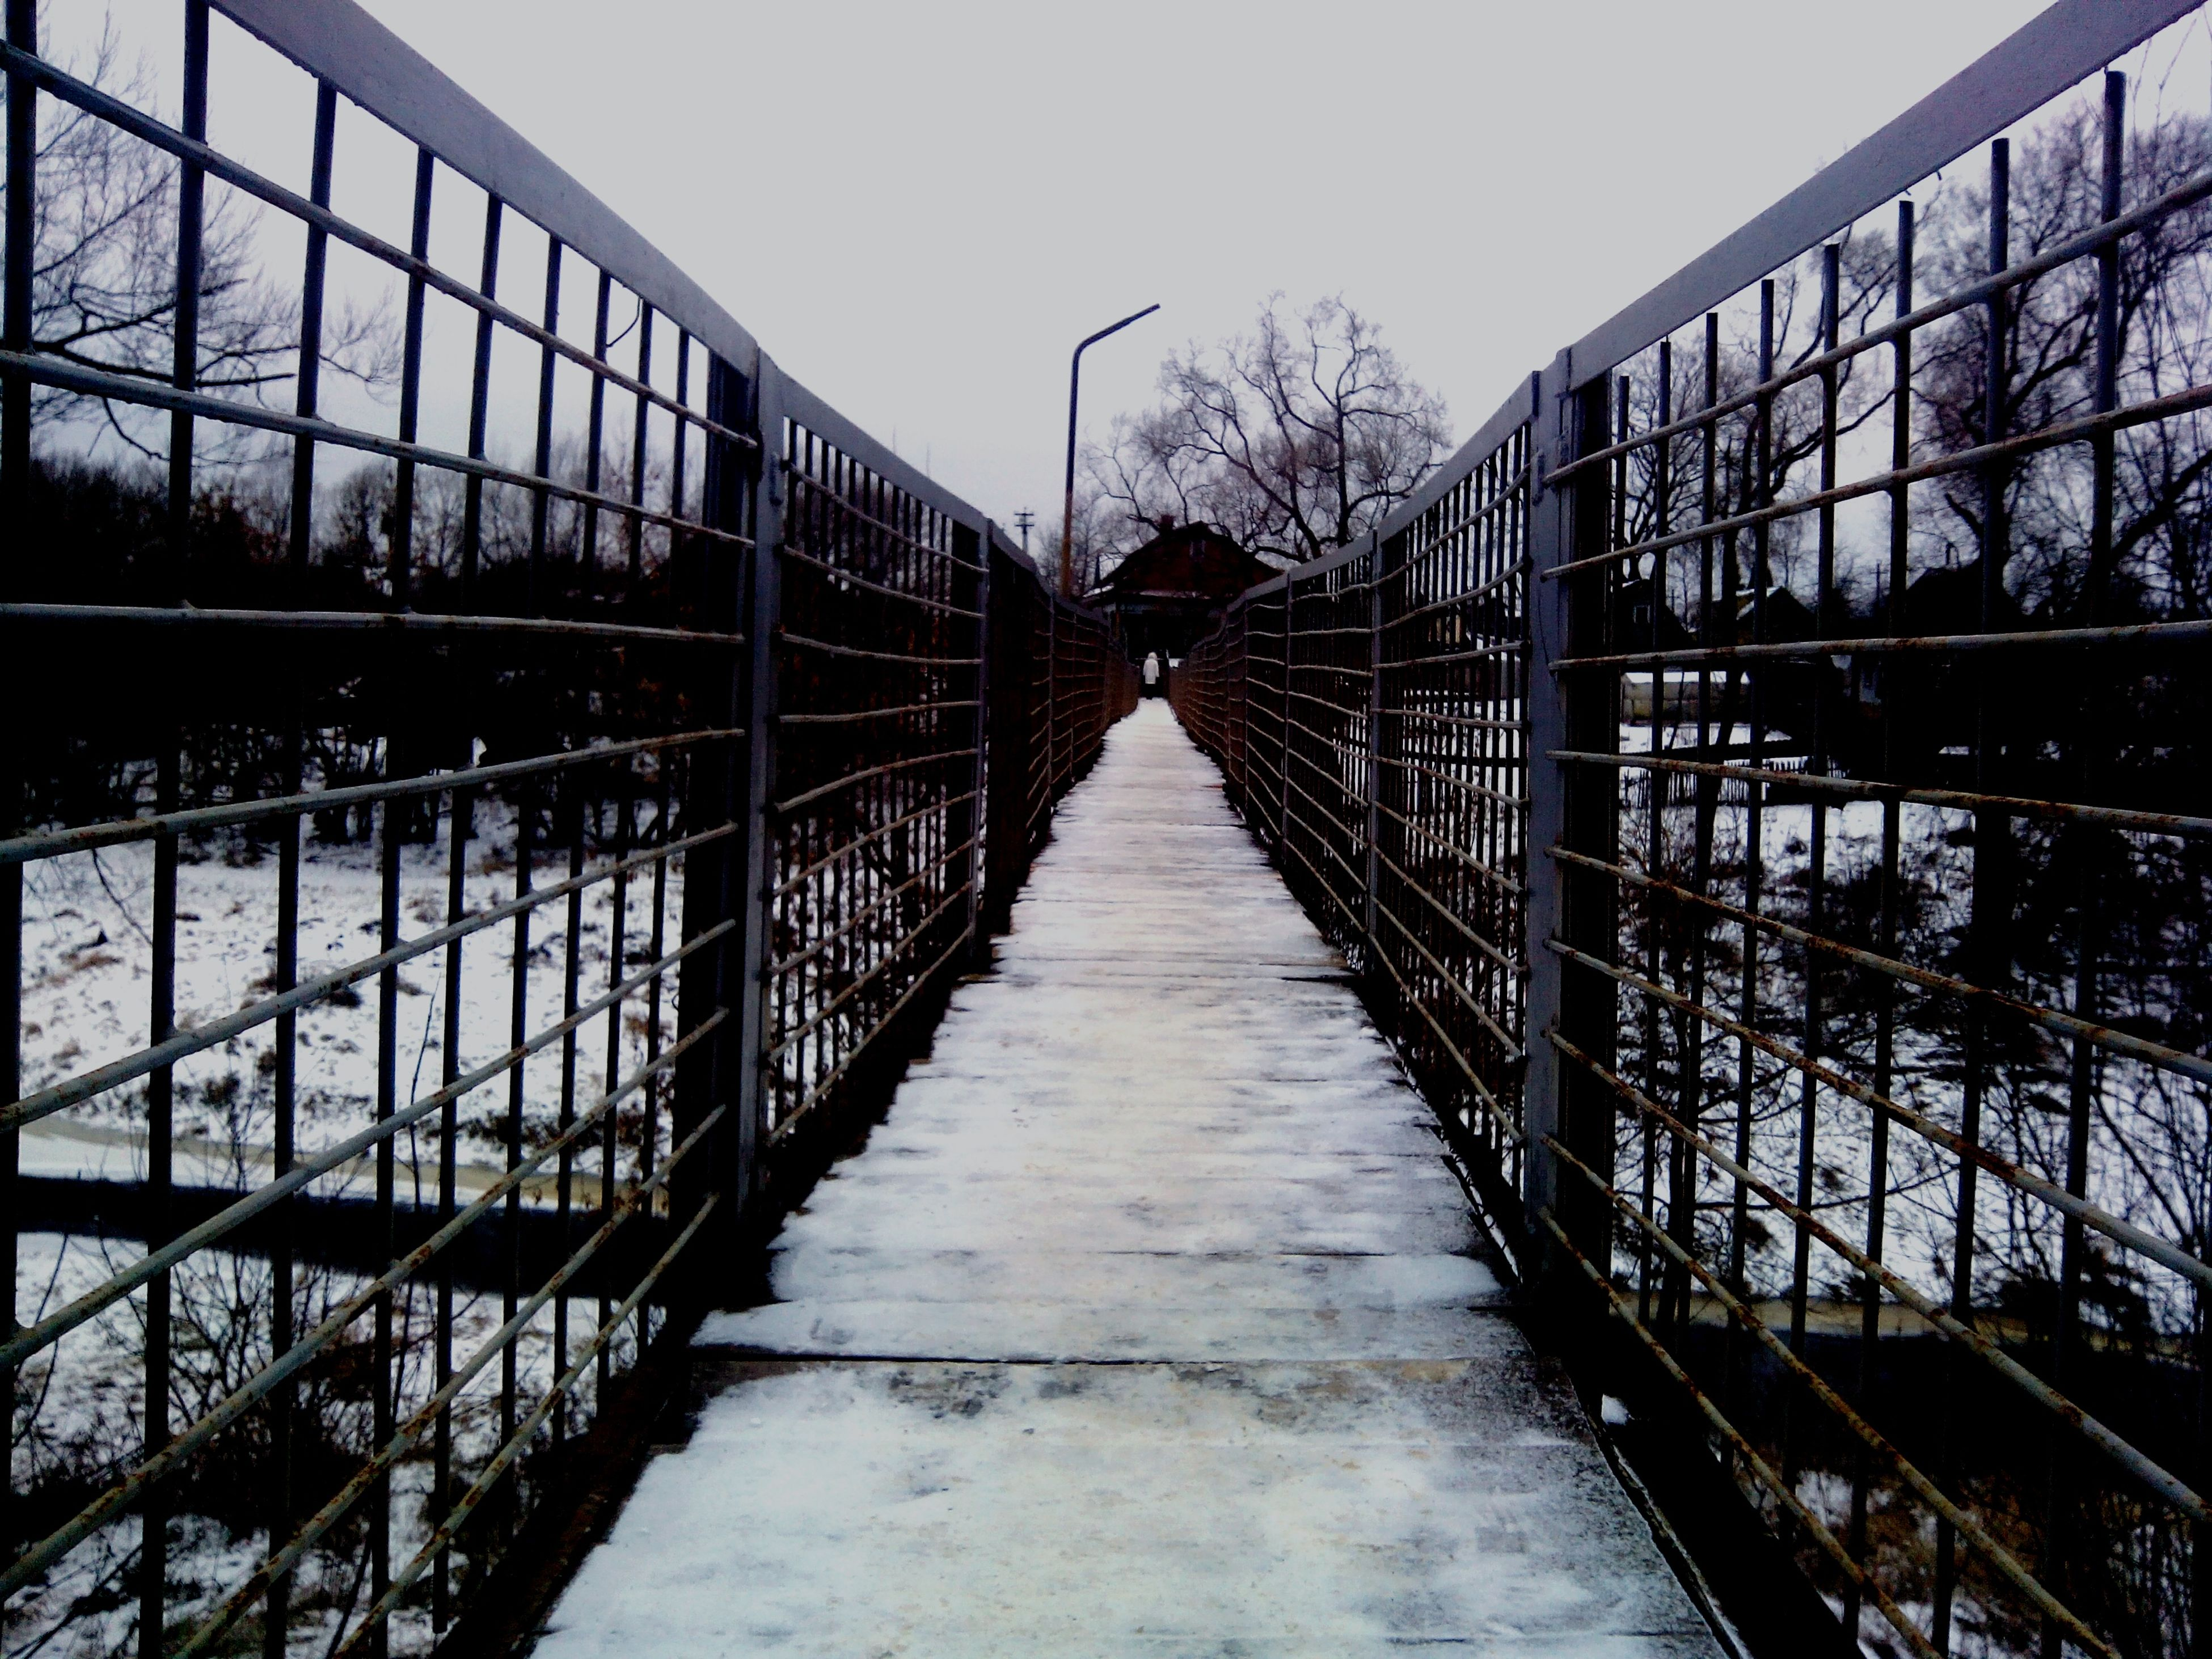 built structure, architecture, connection, the way forward, diminishing perspective, bridge - man made structure, footbridge, vanishing point, sky, railing, building exterior, bridge, transportation, clear sky, long, day, tree, outdoors, water, no people